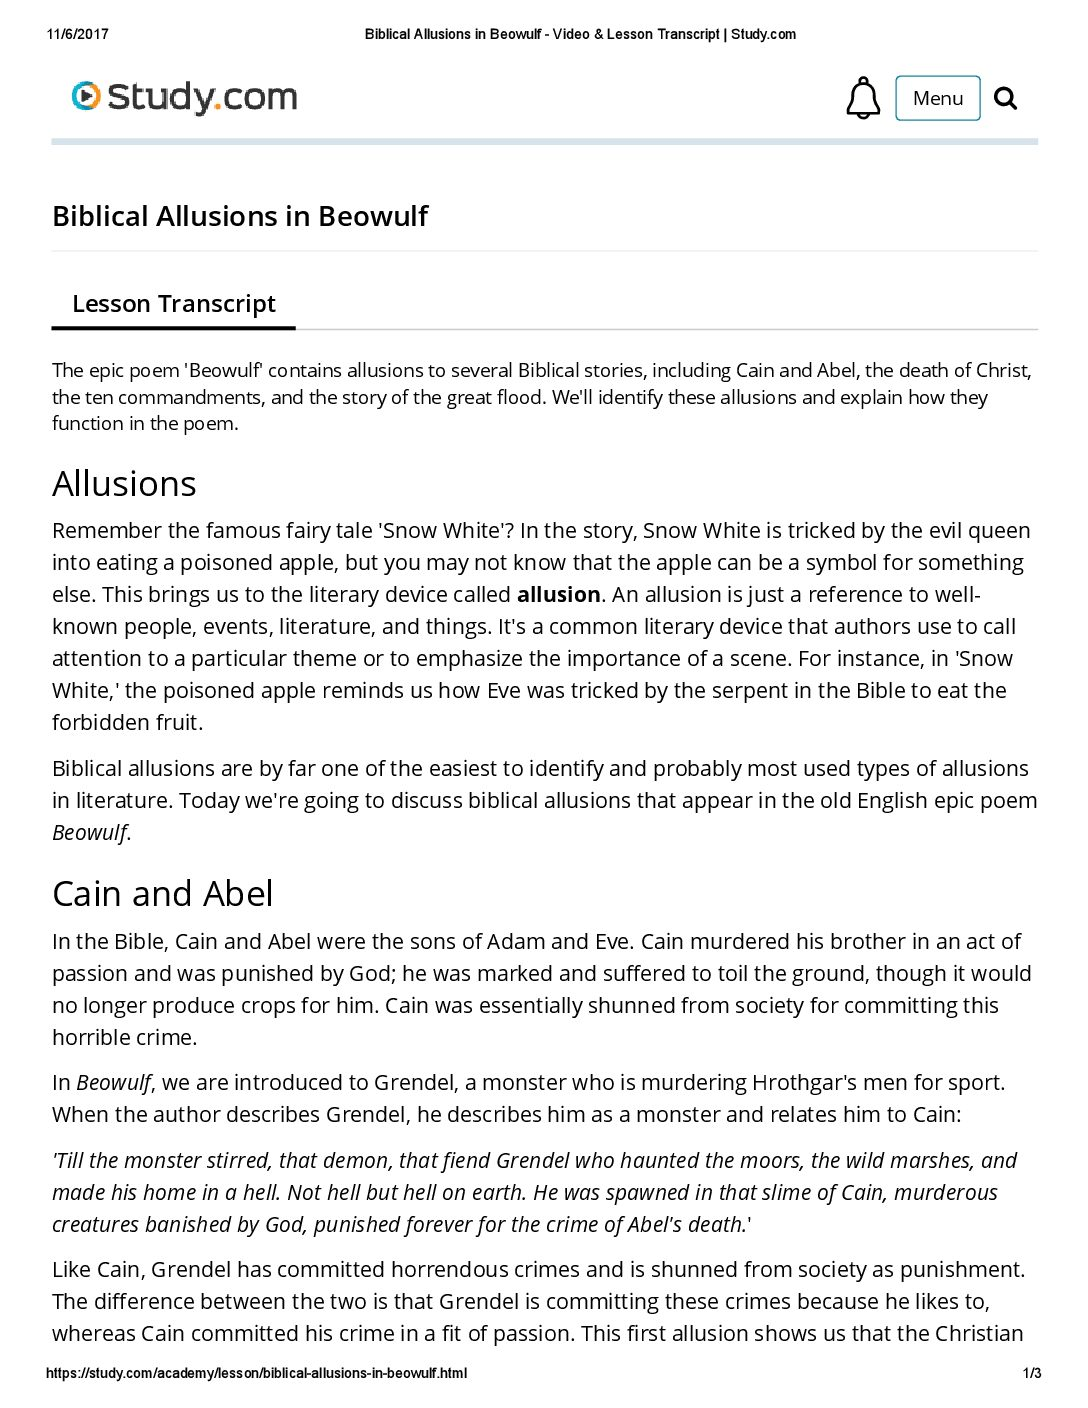 beowulf biblical allusions essay Essays related to beowulf and christianity 1 the text of beowulf clearly shows that at some point in time biblical allusions were beowulf-christianity or.